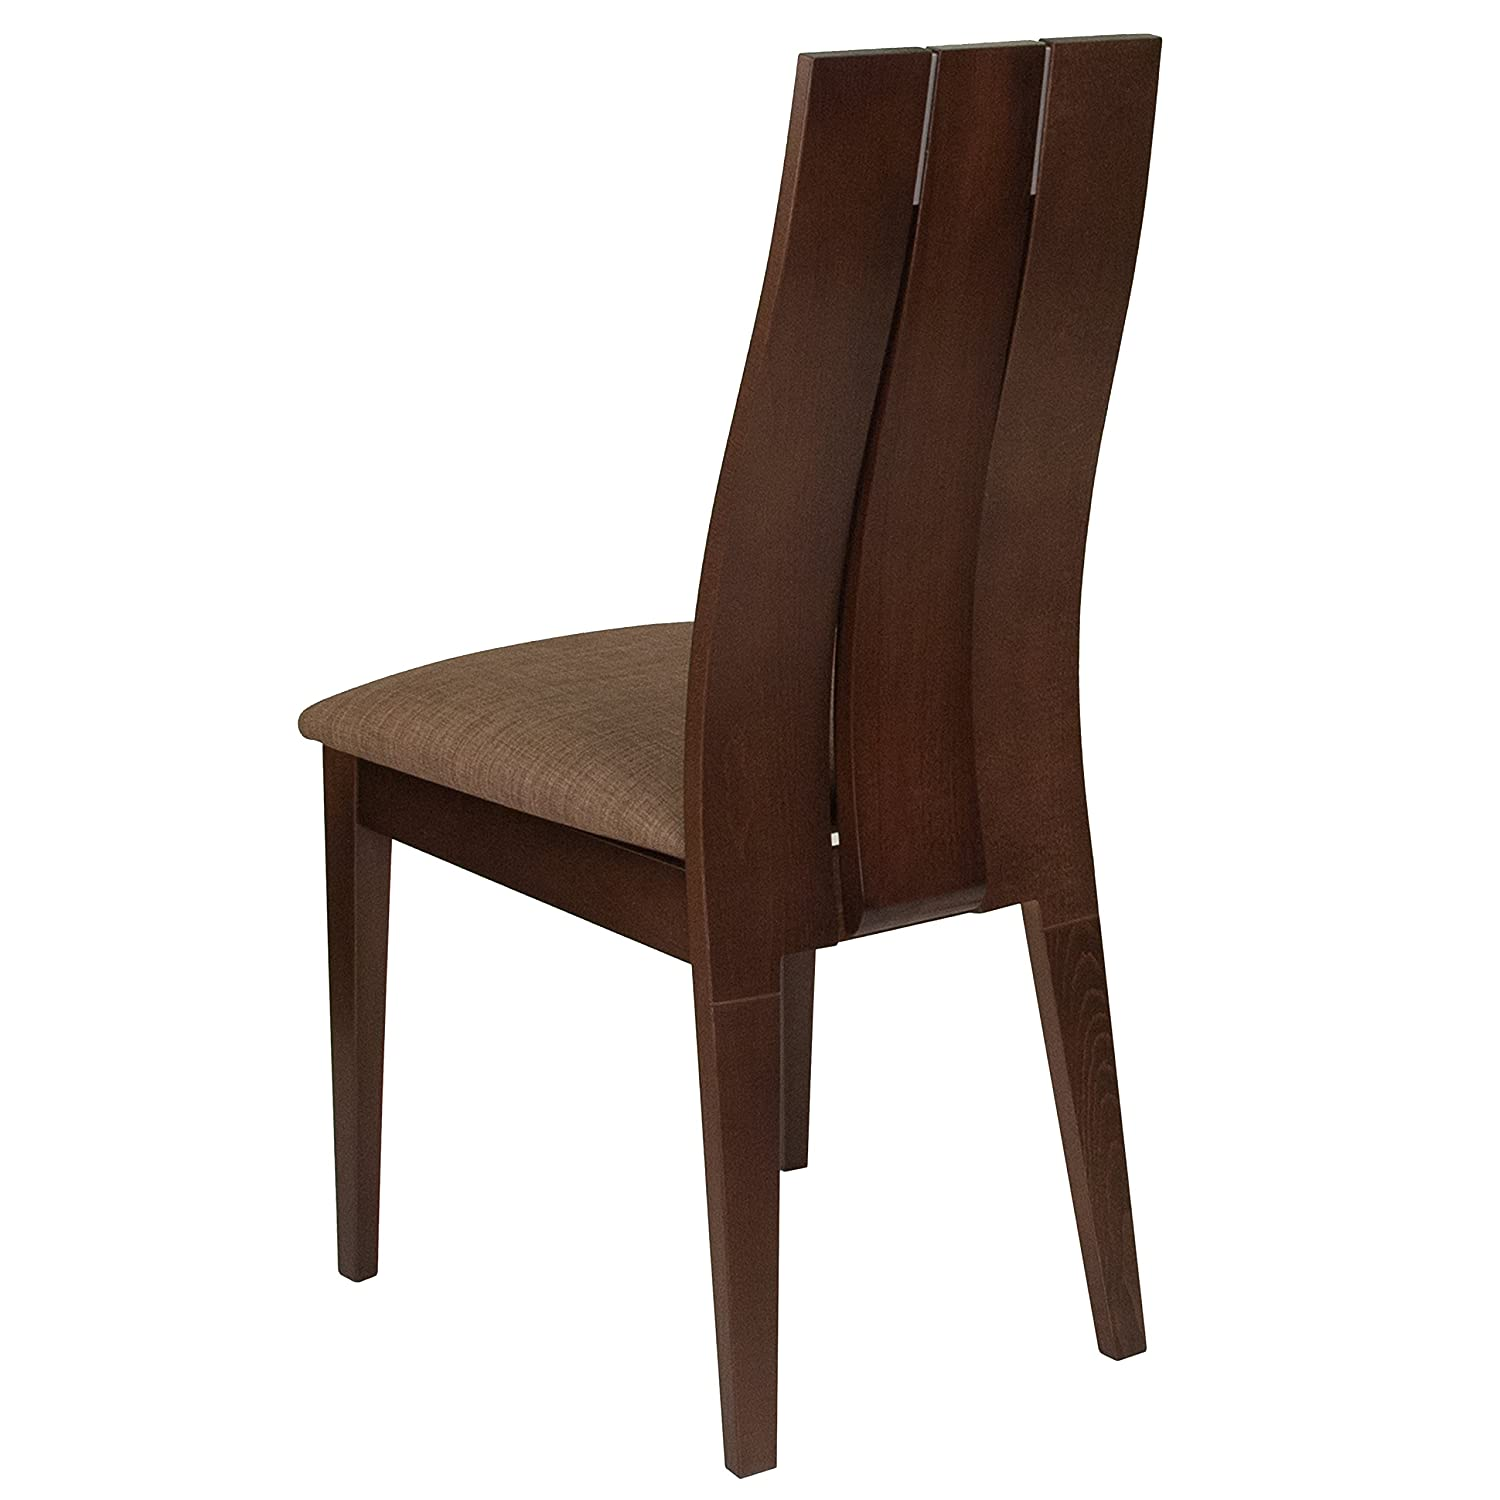 Flash Furniture Hadley Espresso Finish Wood Dining Chair with Wide Slat Back /& Golden Honey Brown Fabric Seat